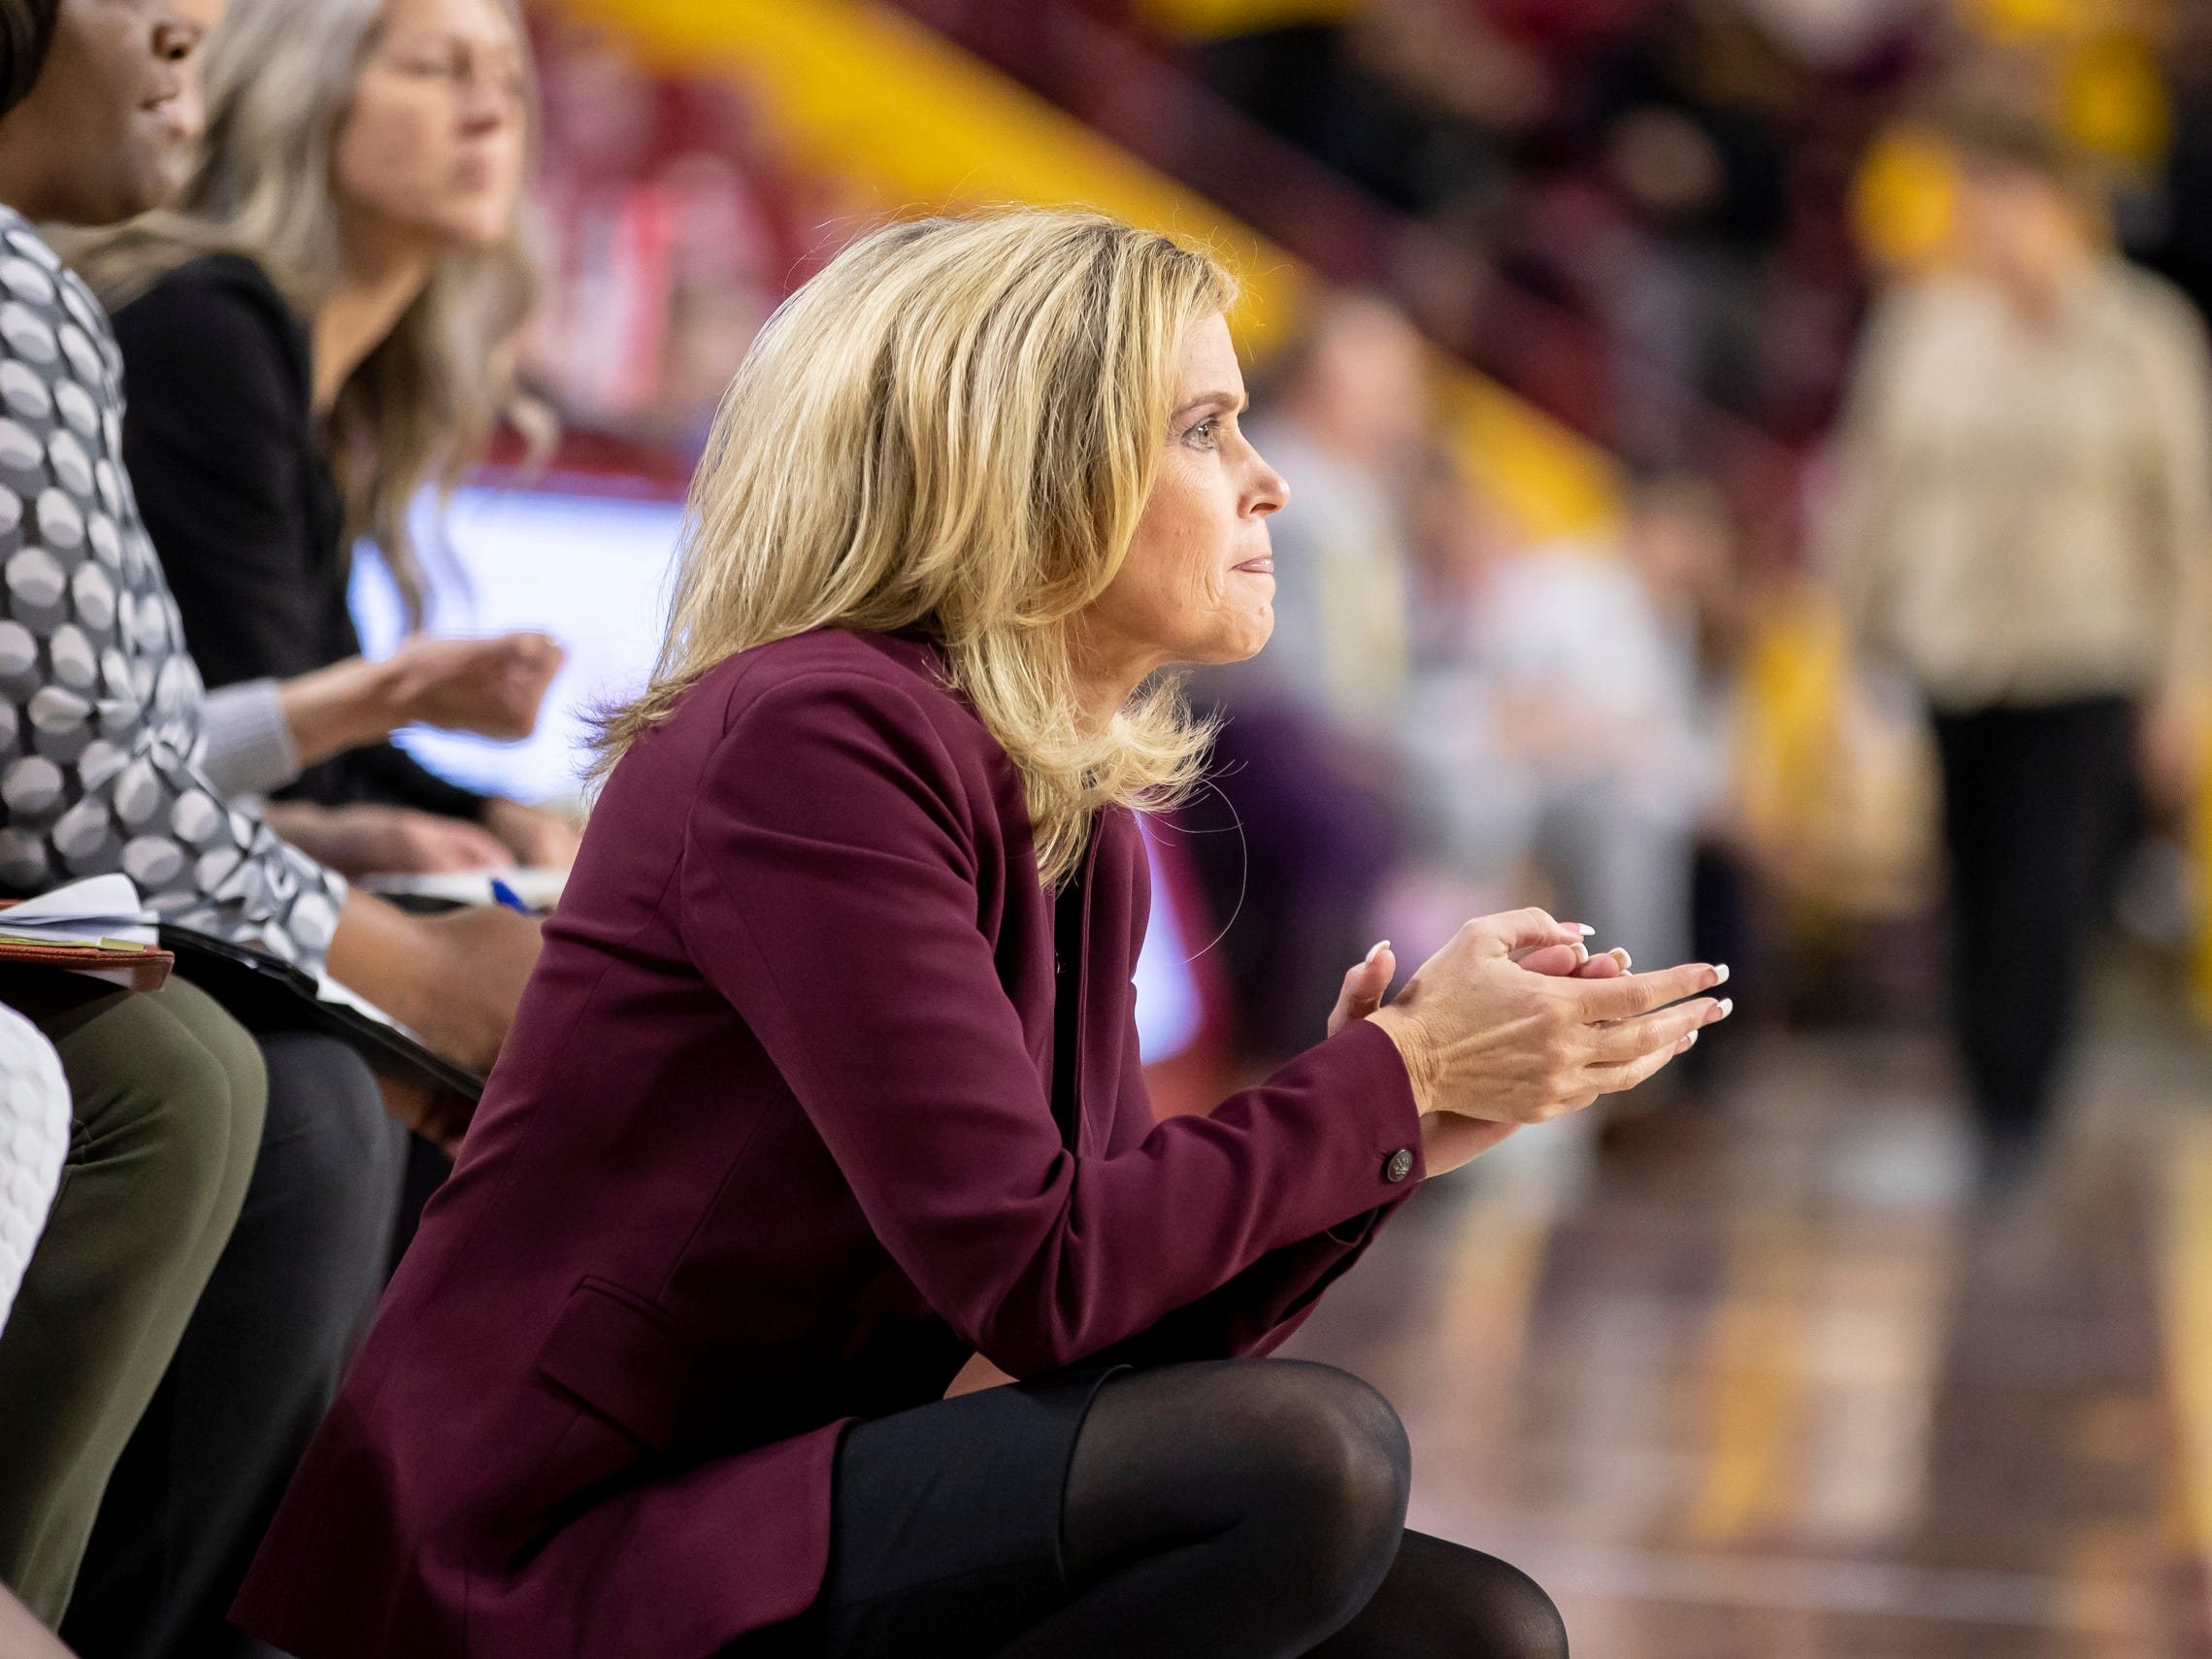 Head coach Charli Turner Thorne of the Arizona State Sun Devils looks on during the game against Tulsa Golden Hurricane at Wells Fargo Arena on Sunday, December 2, 2018 in Tempe, Arizona.